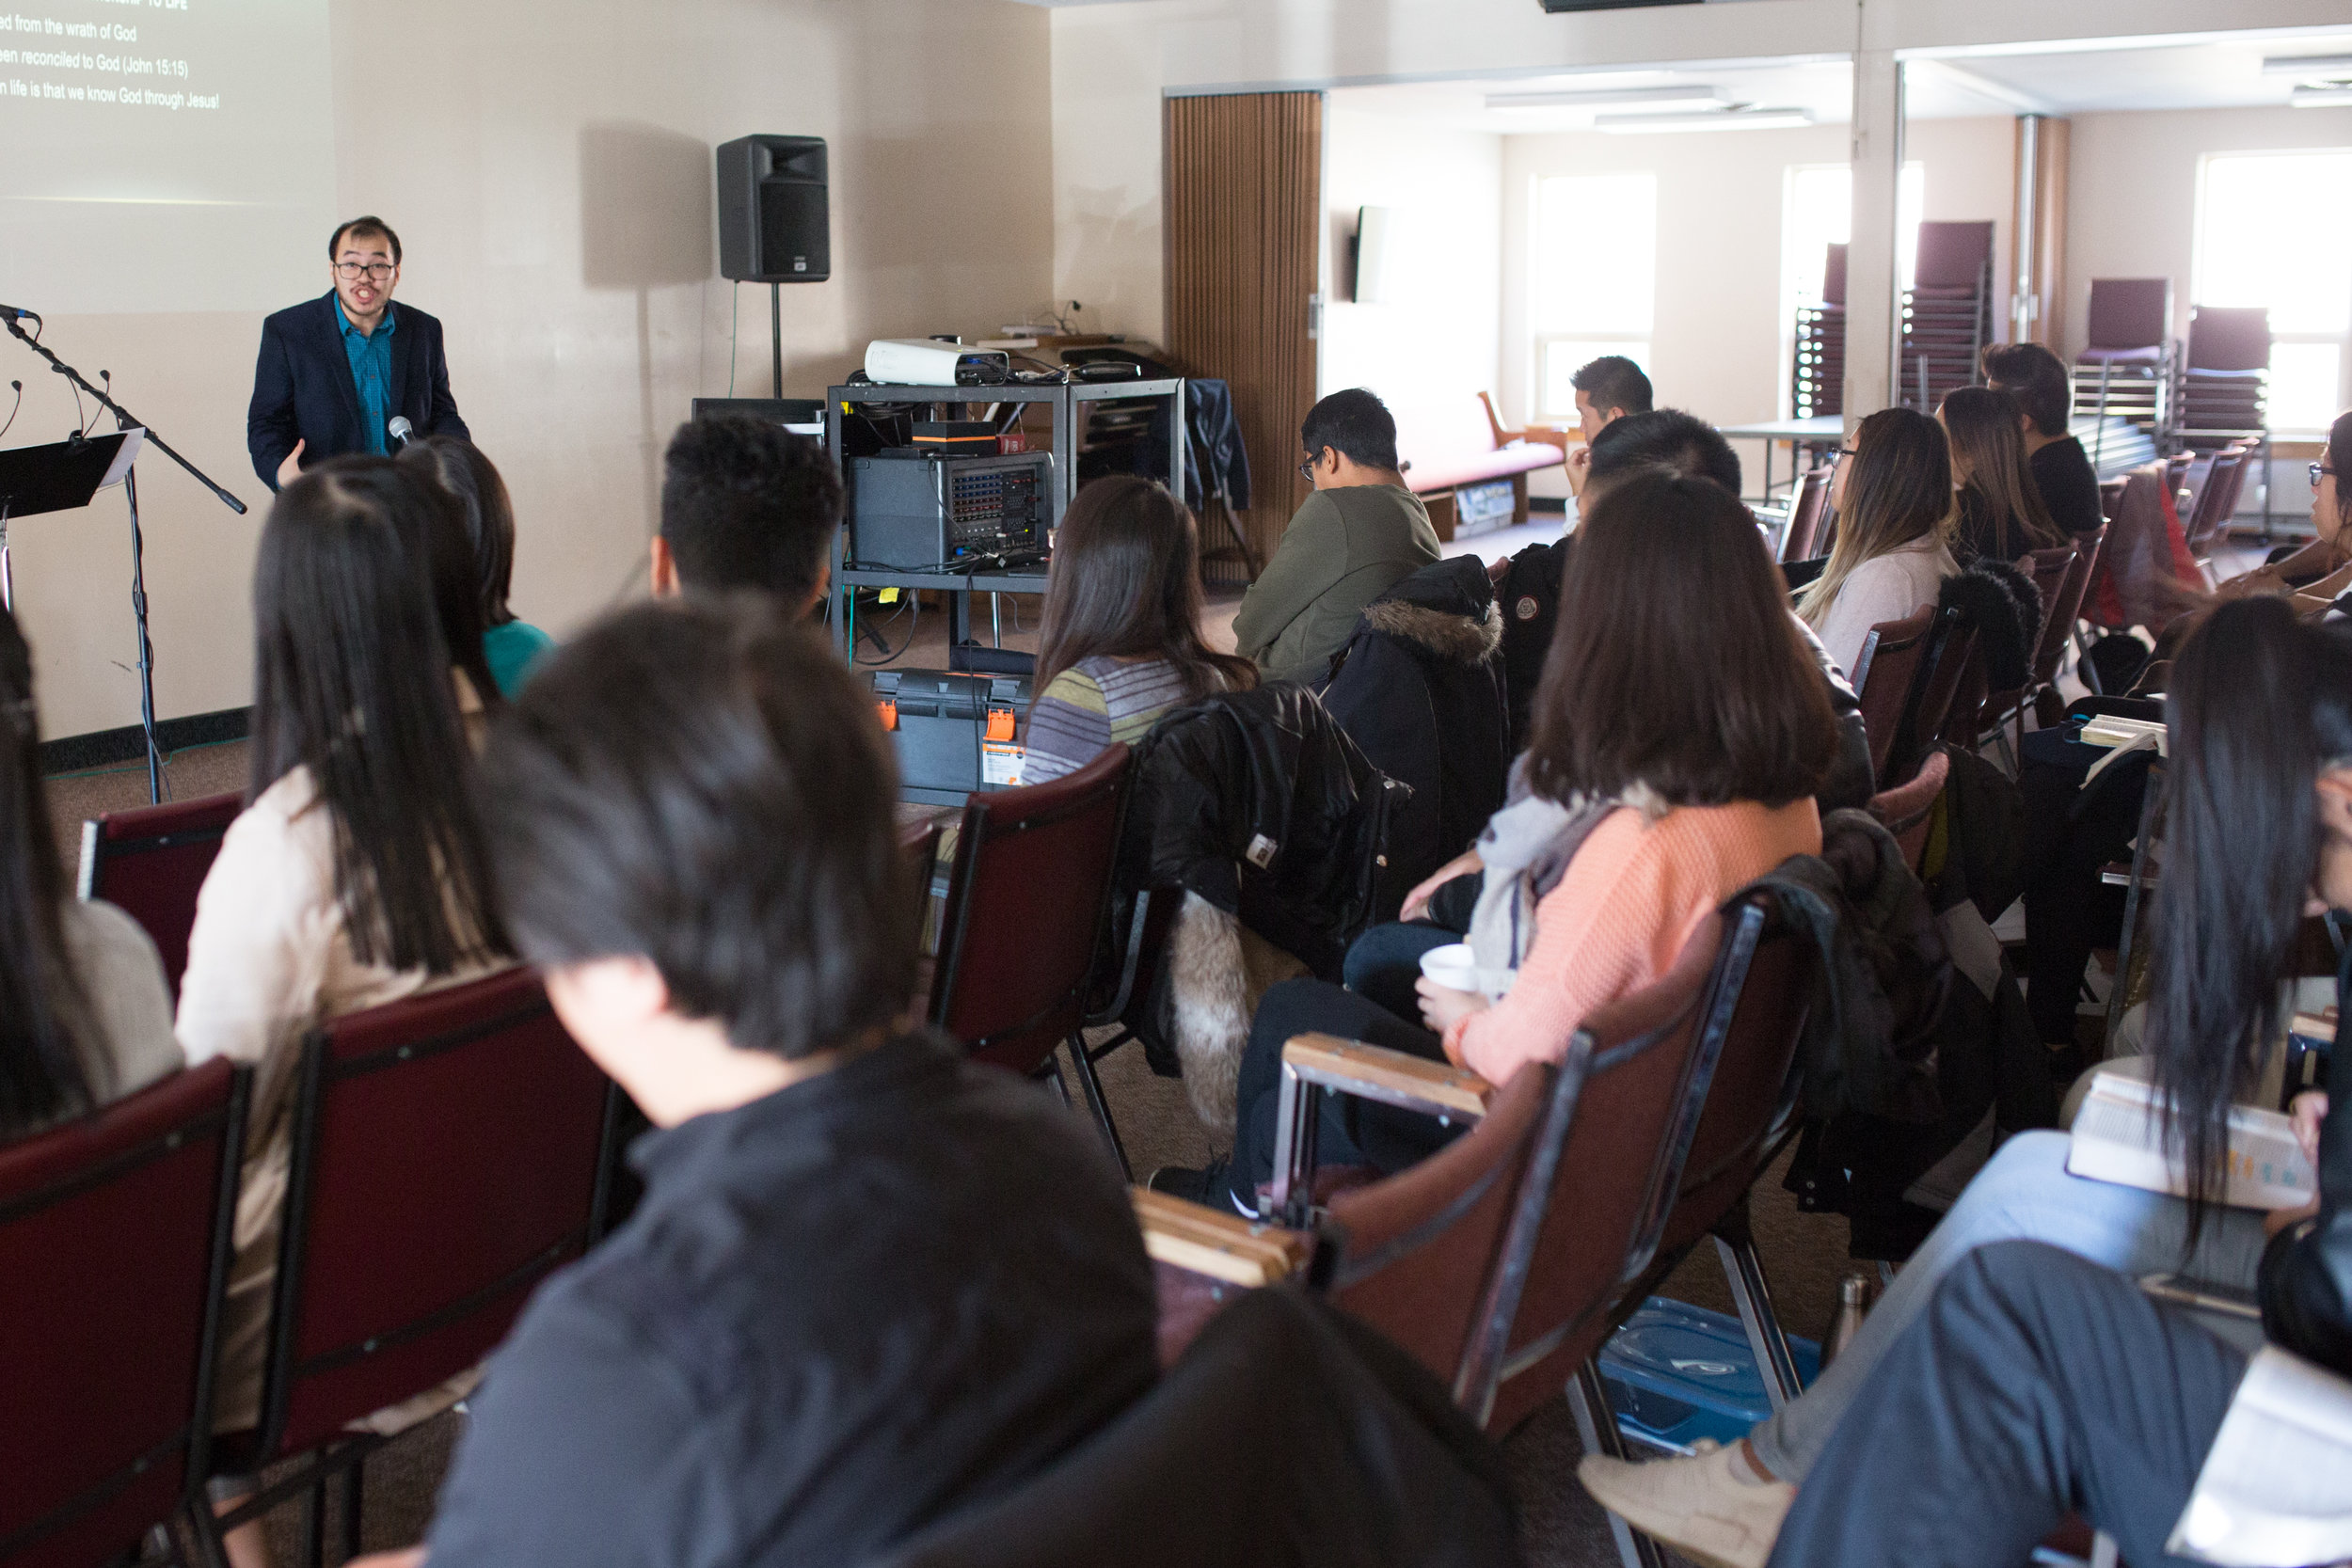 Risen is a New Venture in Hamilton that was birthed out of a Vietnamese ethnic church who desires to expand God's Kingdom in the suburban areas on Hamilton Mountain.